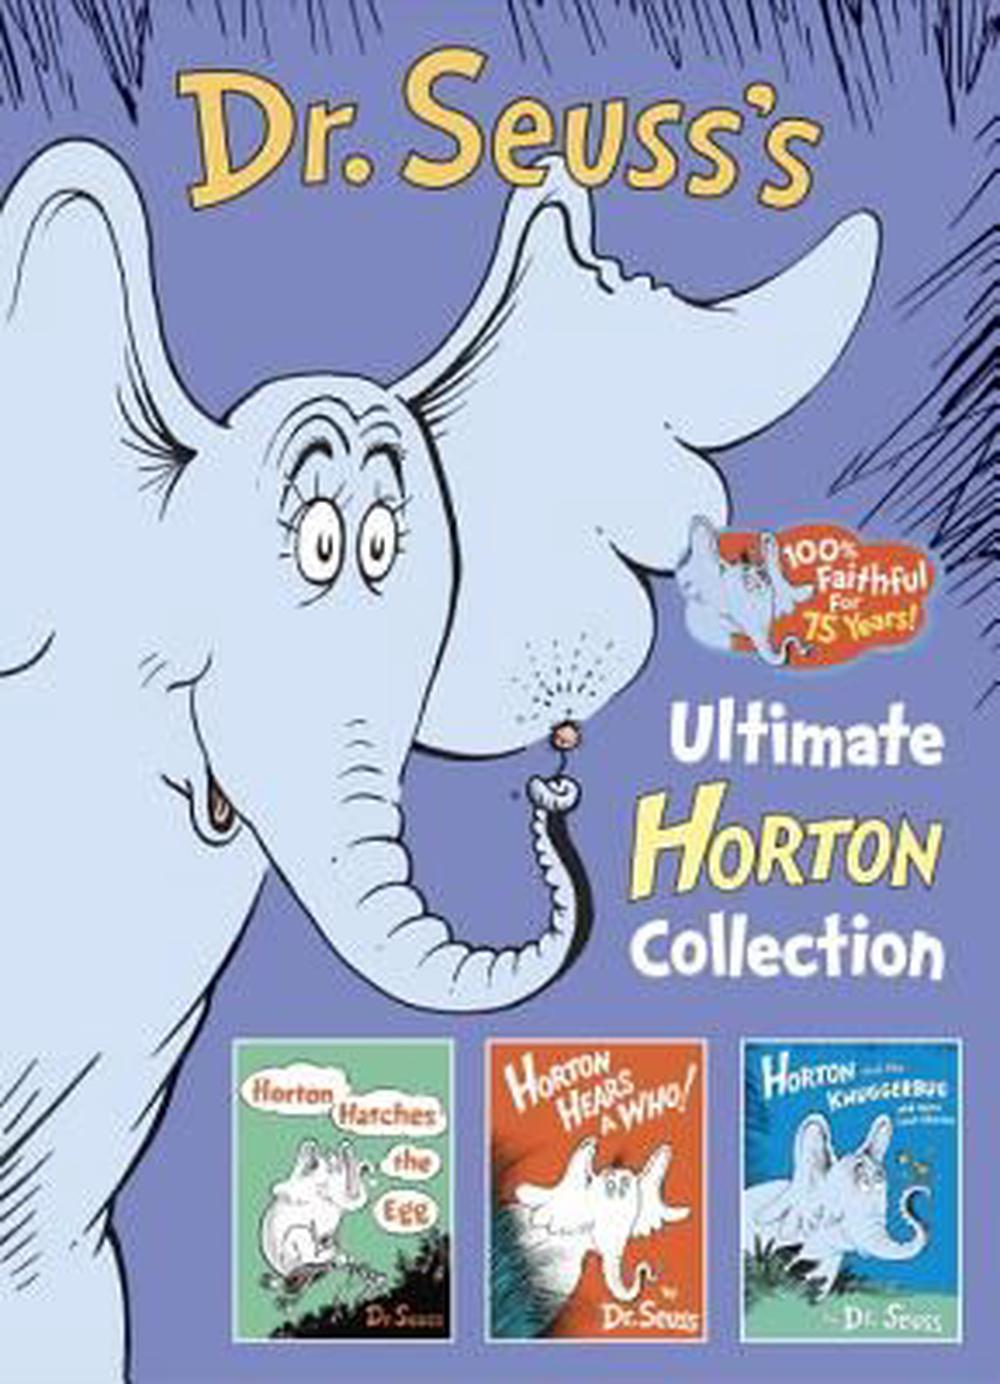 Dr. Seuss's Ultimate Horton Collection 3C BX SET